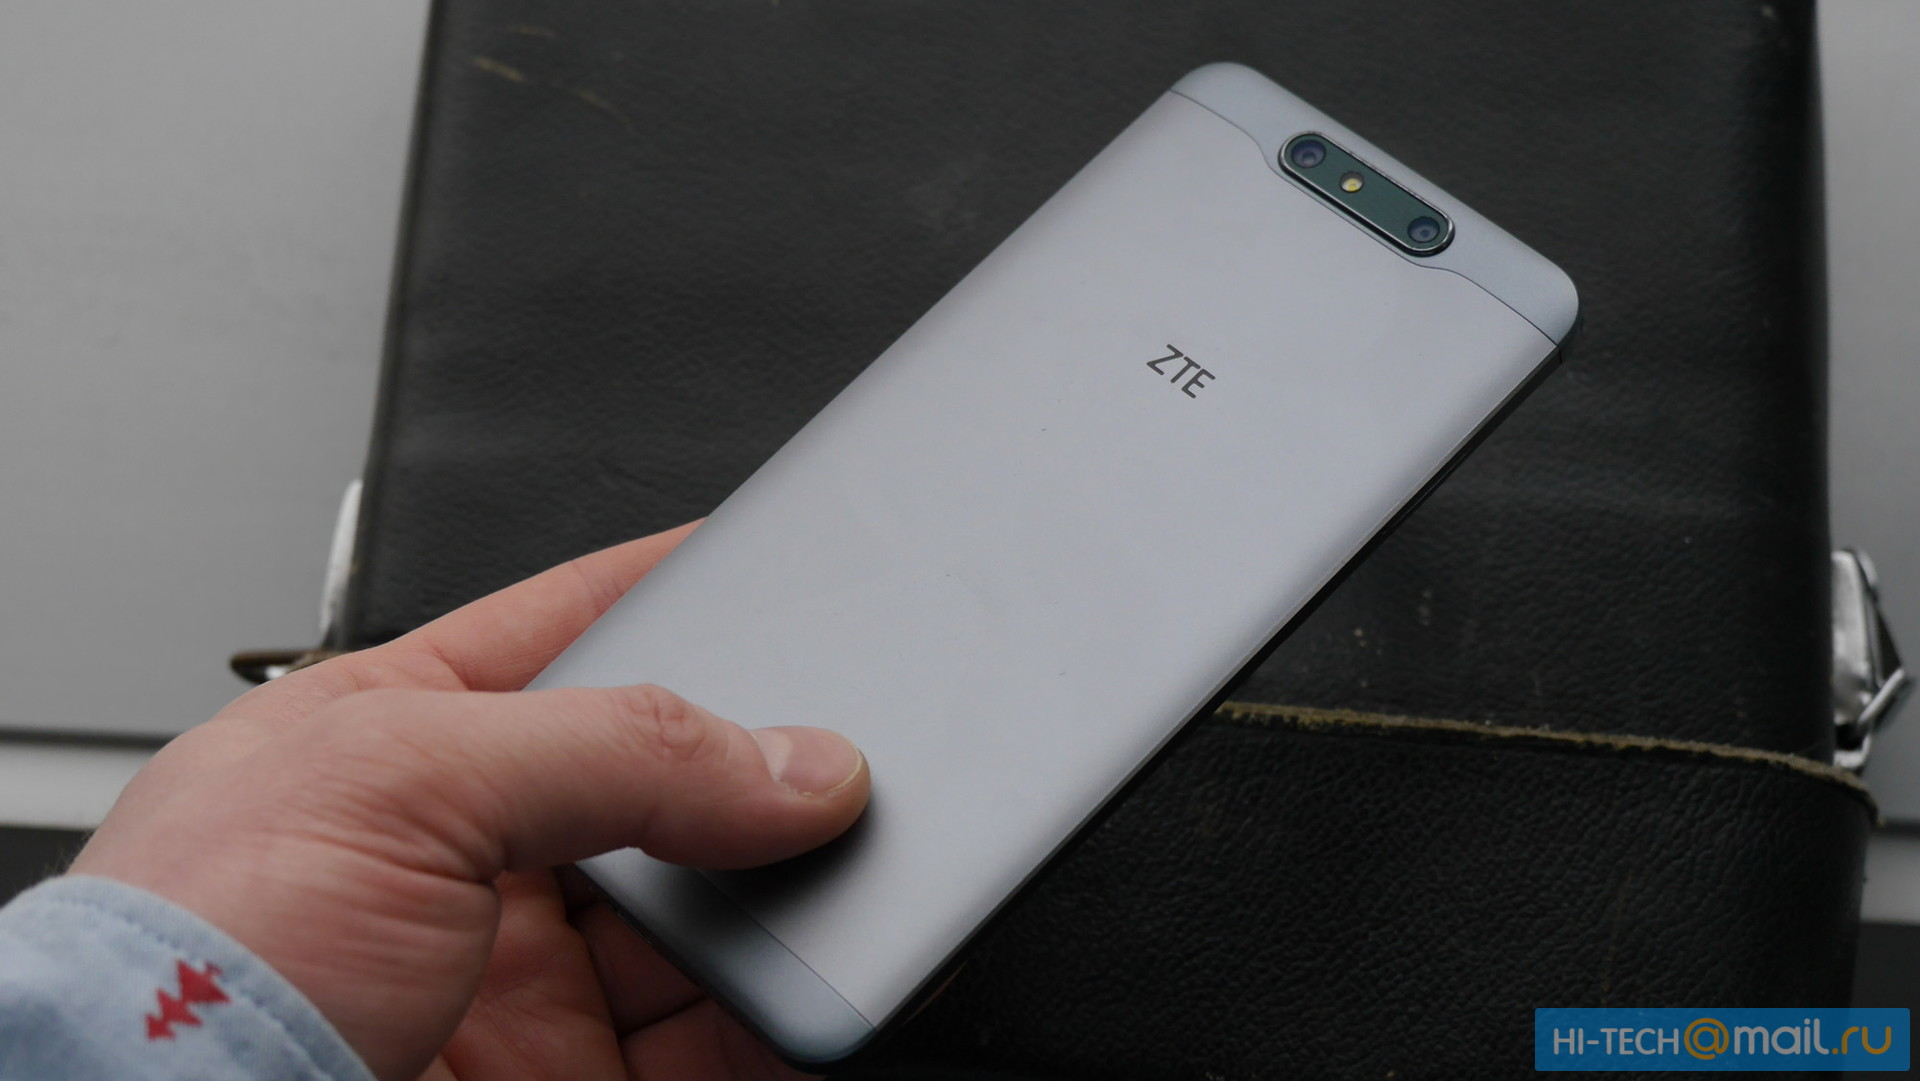 ZTE Blade V8: Dual-Cam midrange phone will be announced at